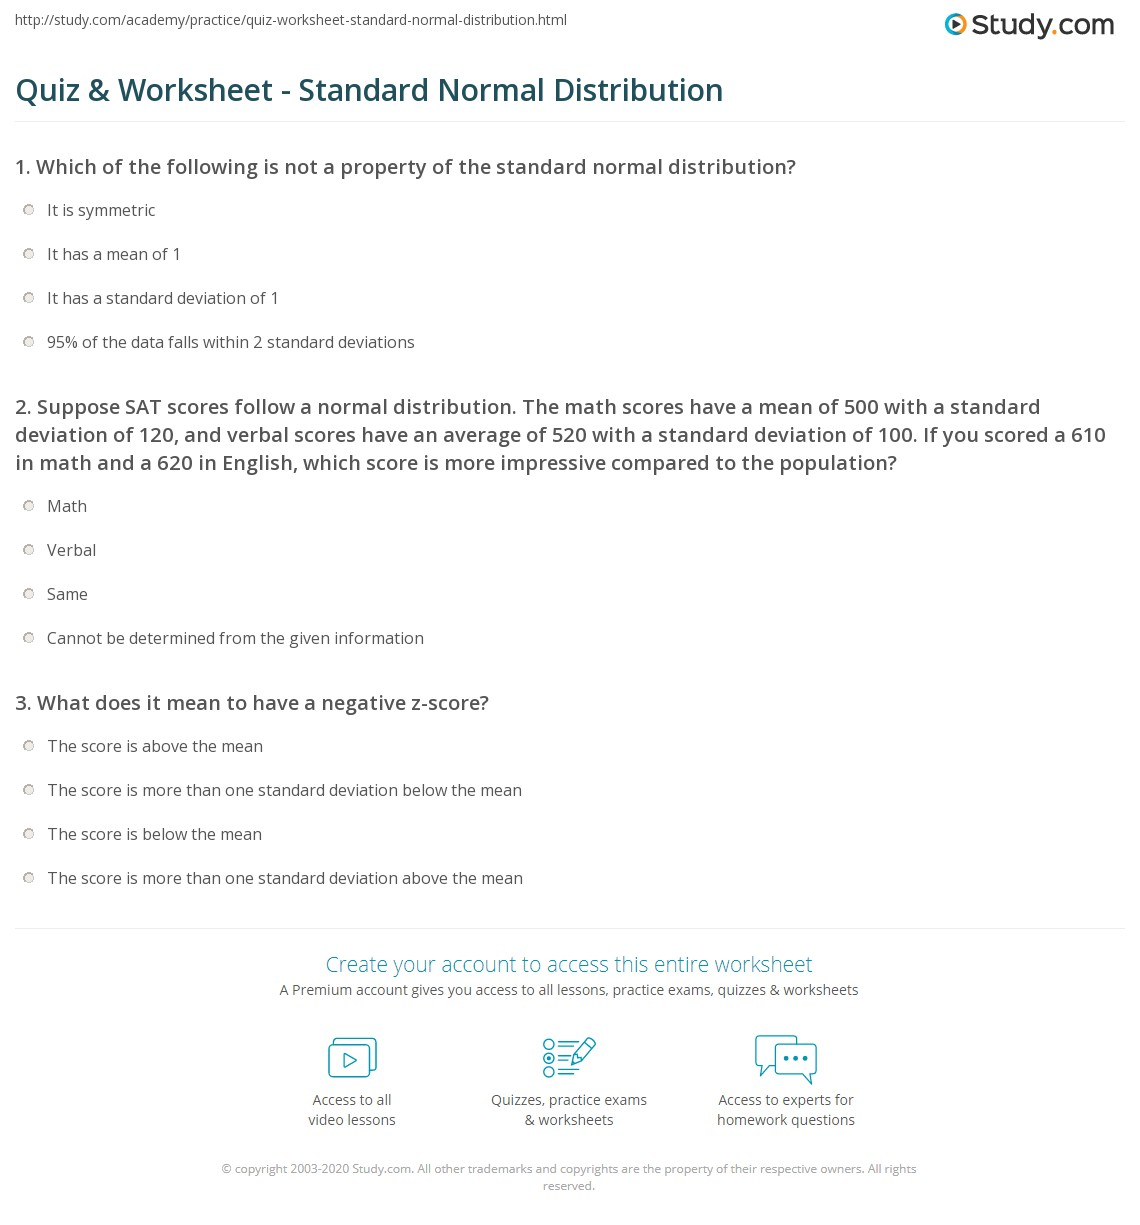 Quiz & Worksheet - Standard Normal Distribution | Study.com